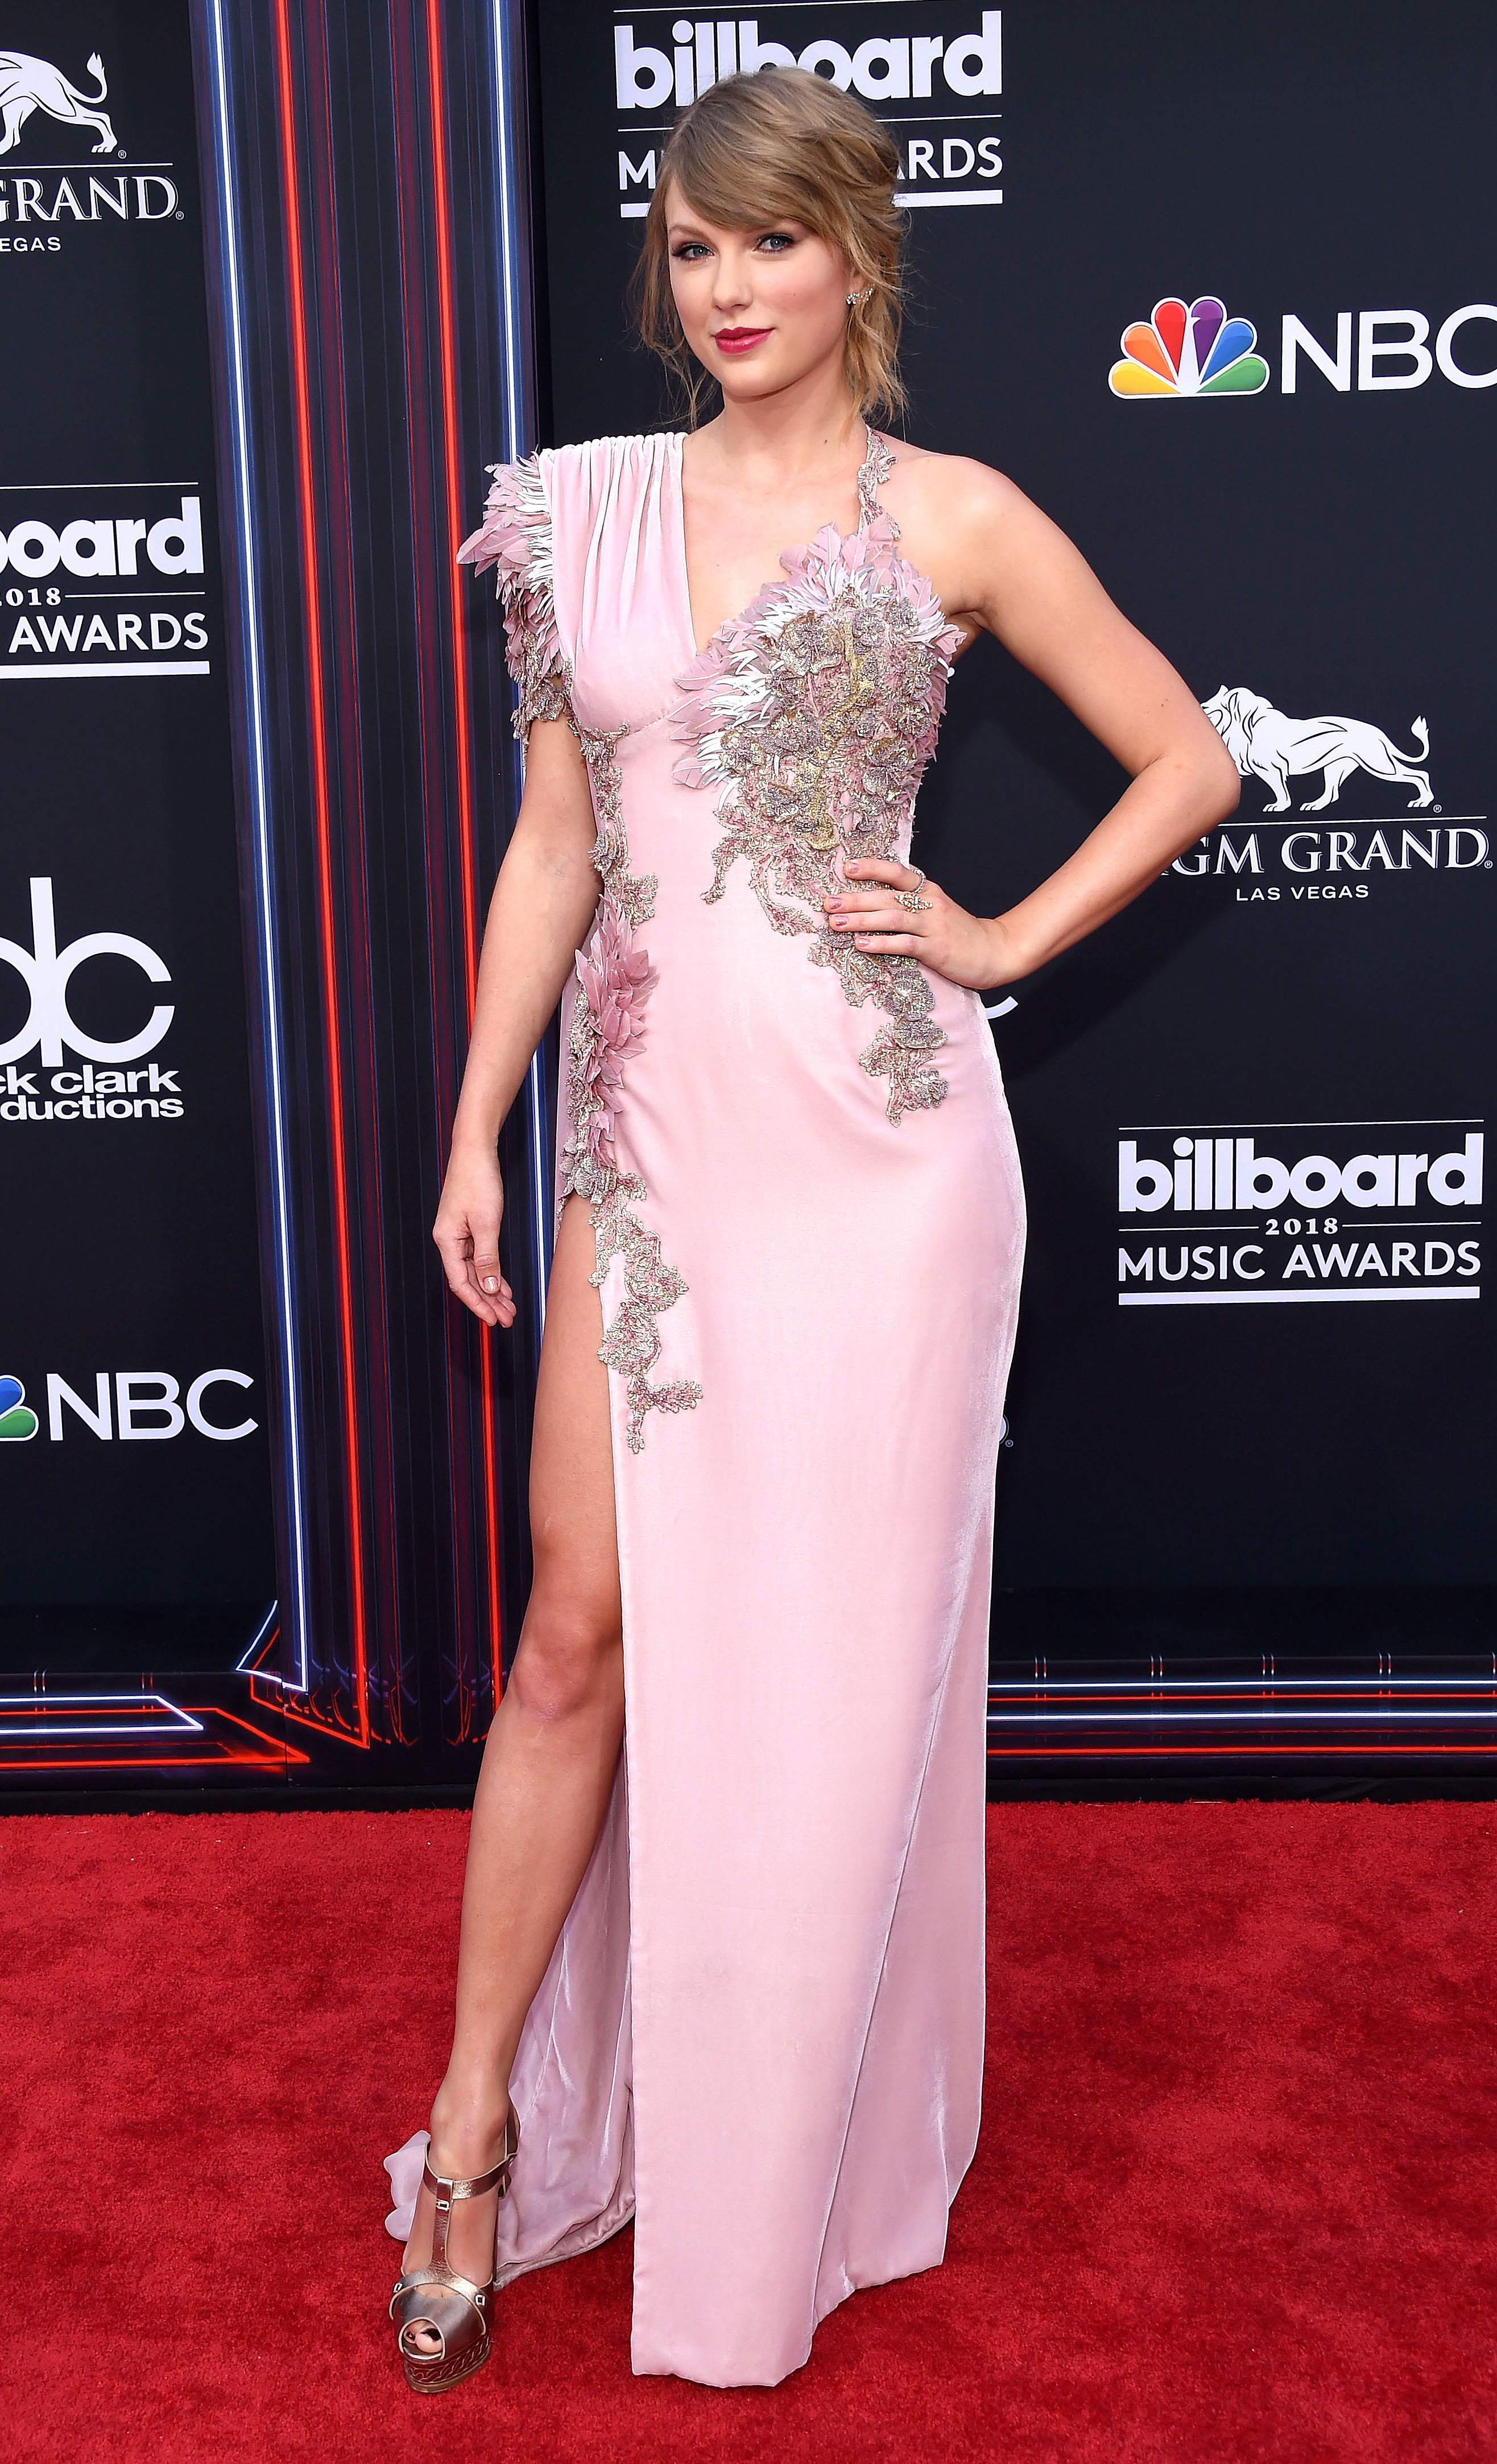 taylor-swift-billboard-pink-gown - At the 2018 Billboard Music Awards, the blonde beauty provided a bit of a #TBT in a single-shoulder, rose-colored velvet Atelier Versace gown embellished with sequined embroidery and feathers.